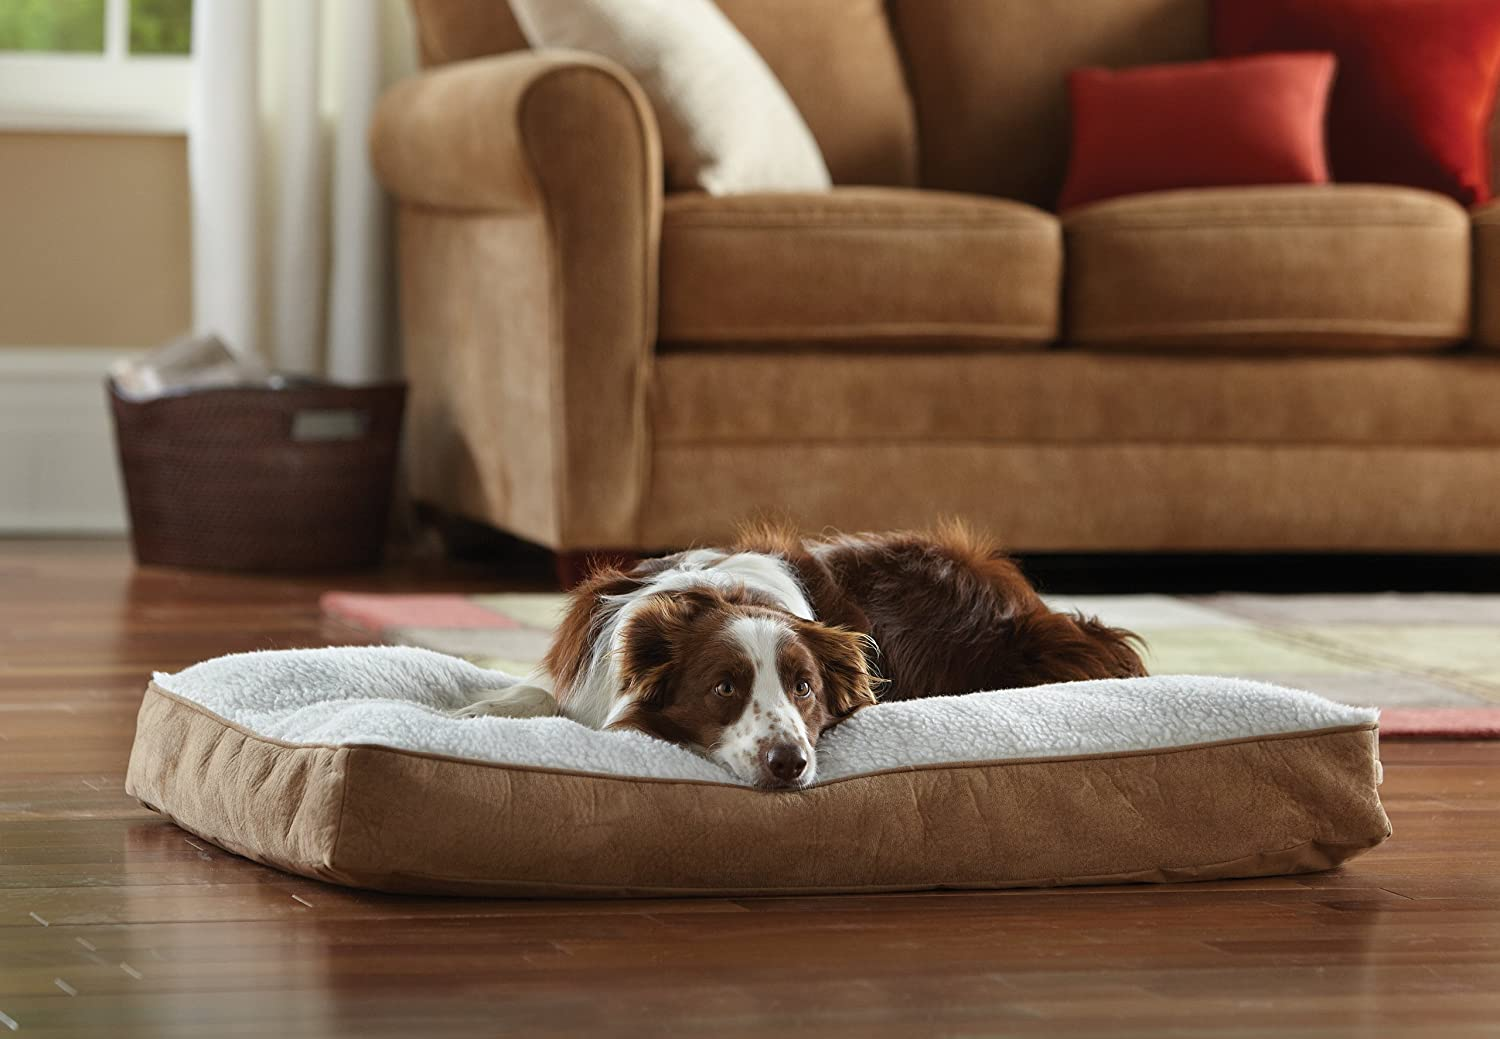 b bowls zoom beds big dog in orthopedic bed schneider at bolstered large product